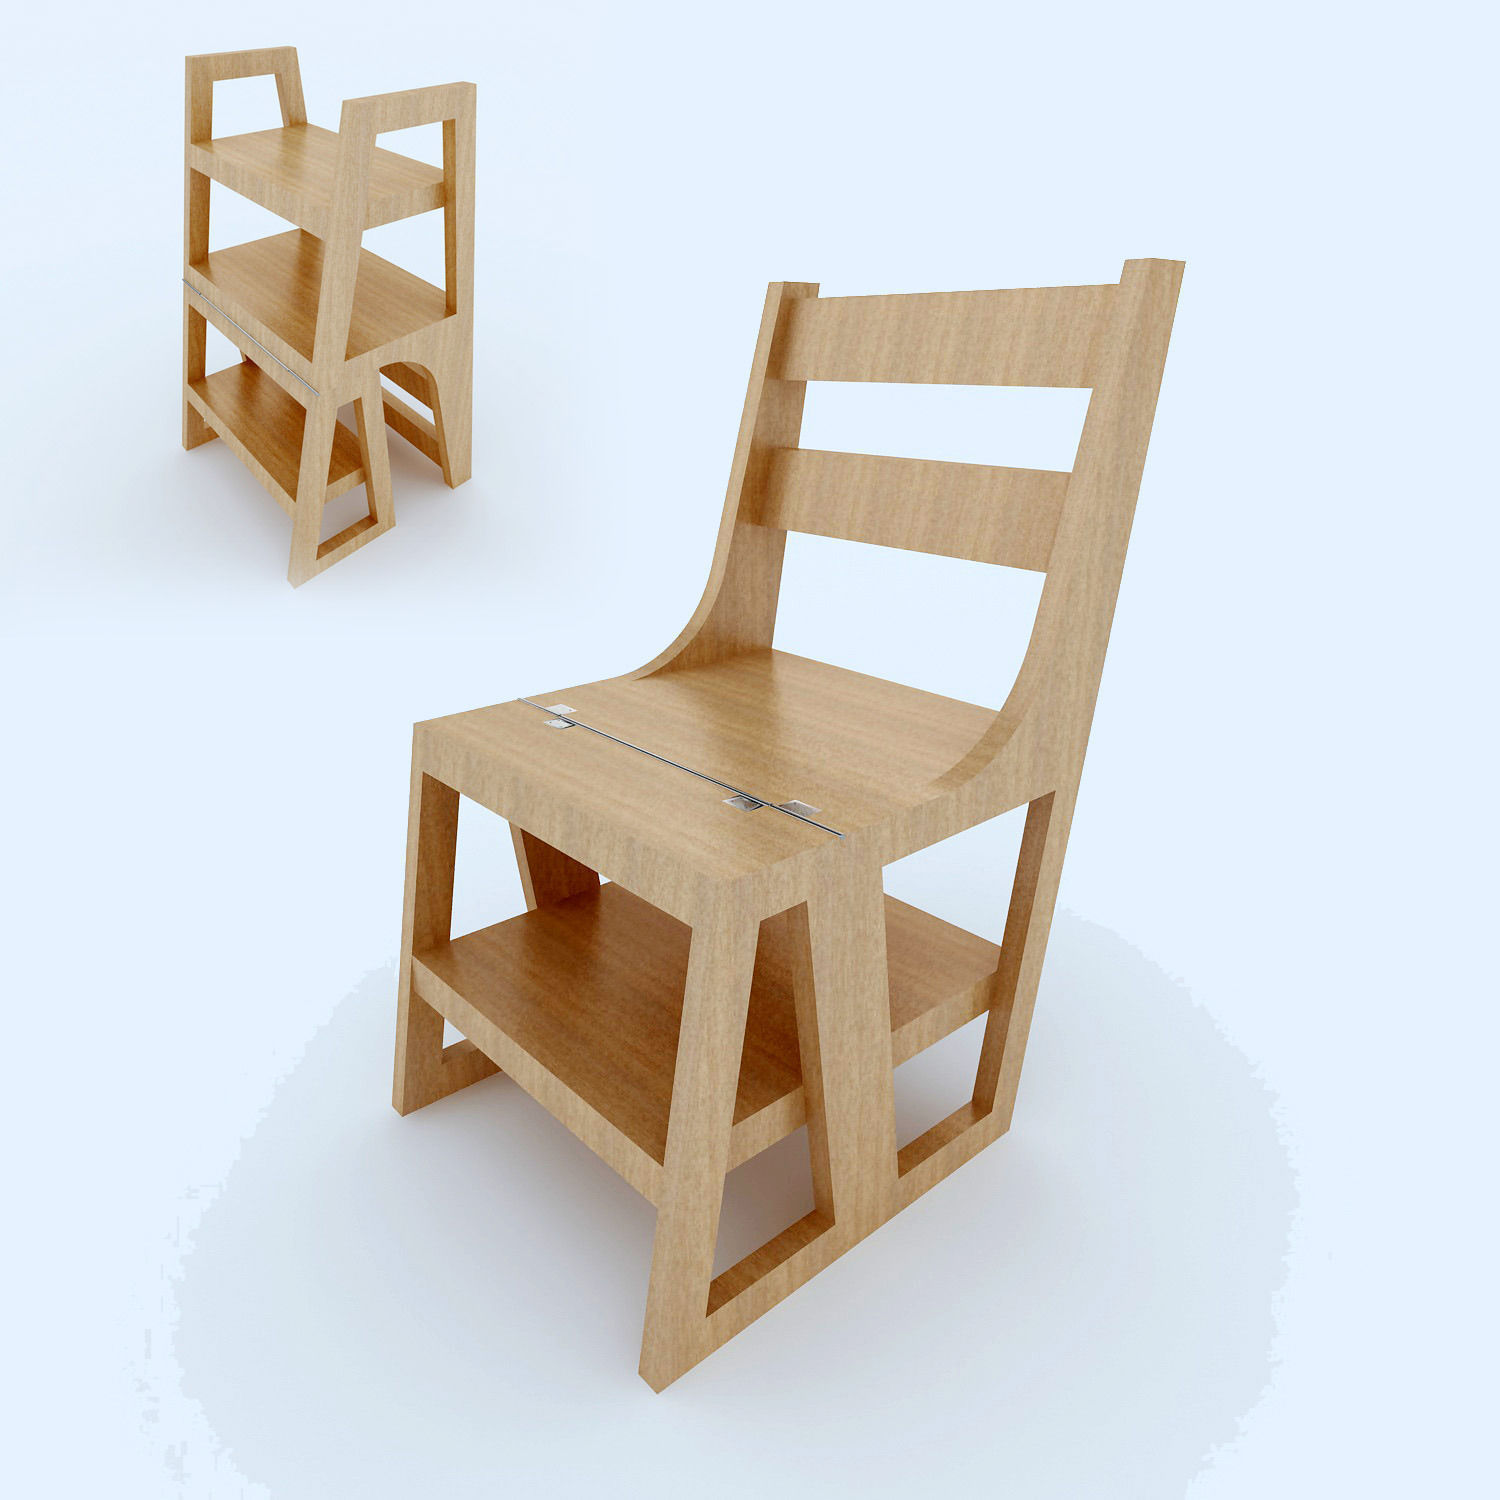 Nice Chair Stair Convertible 3d Model Max 1 ...